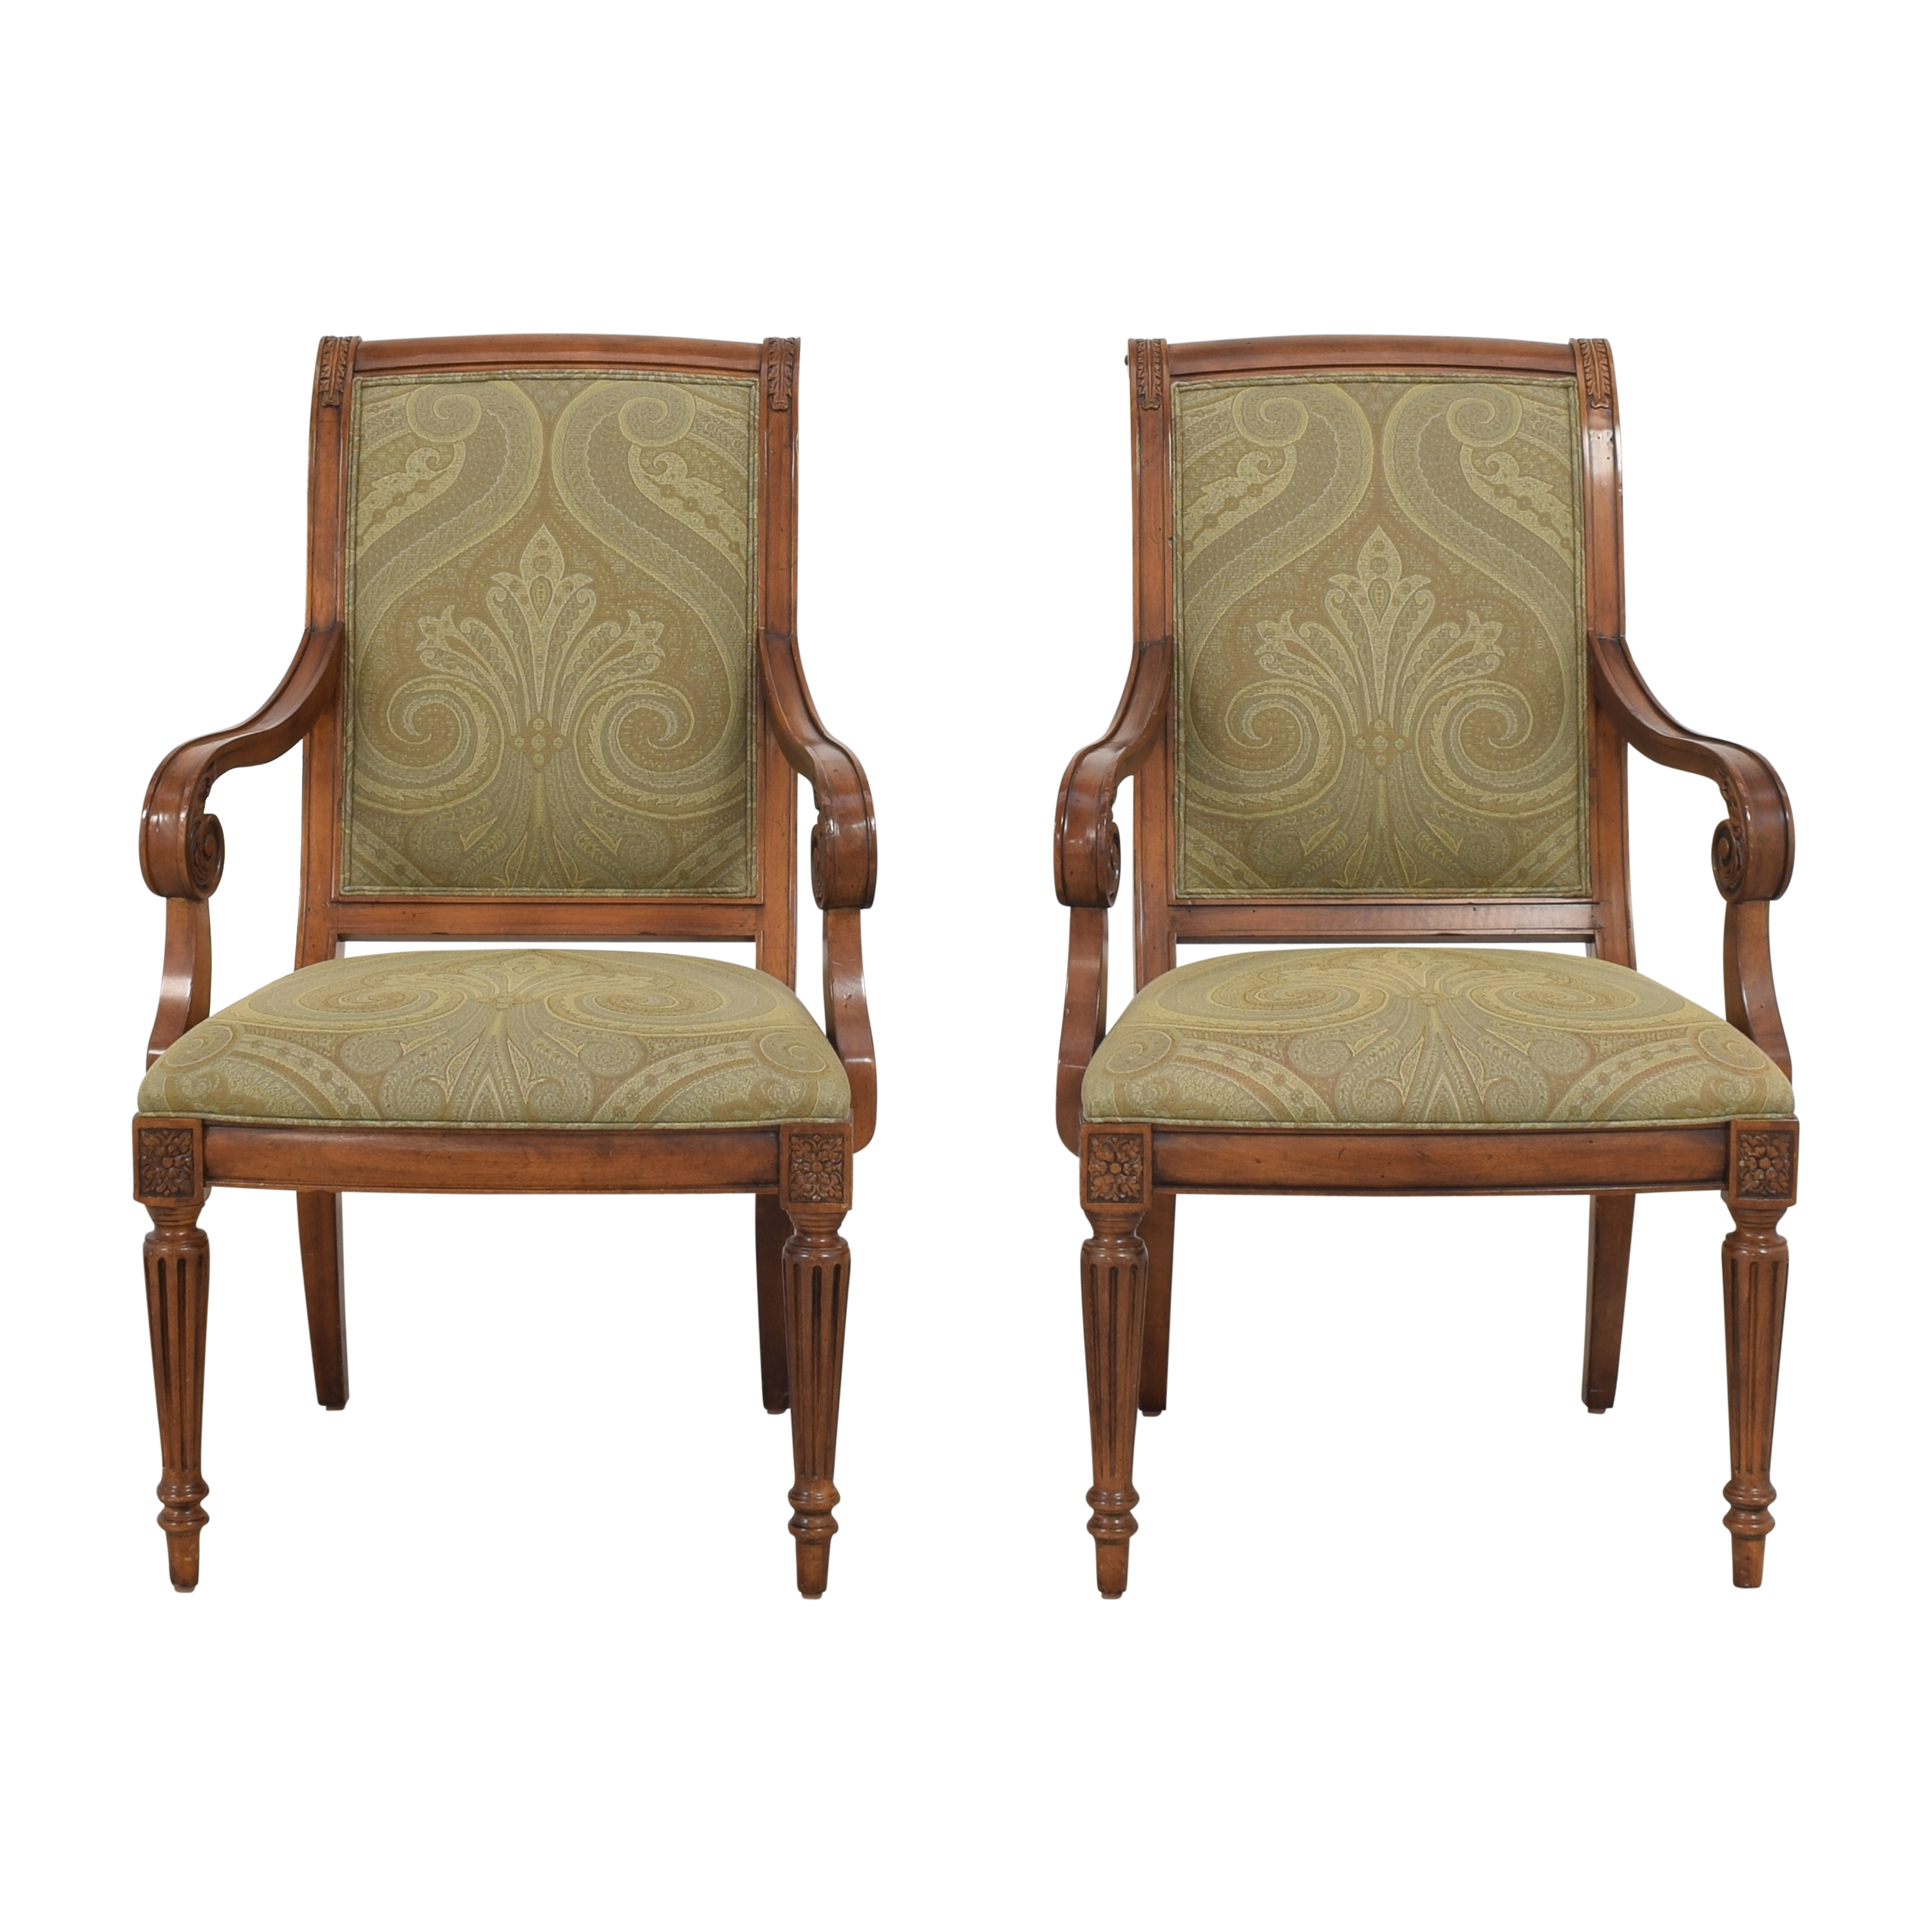 Ethan Allen Ethan Allen Townhouse Addison Dining Arm Chairs